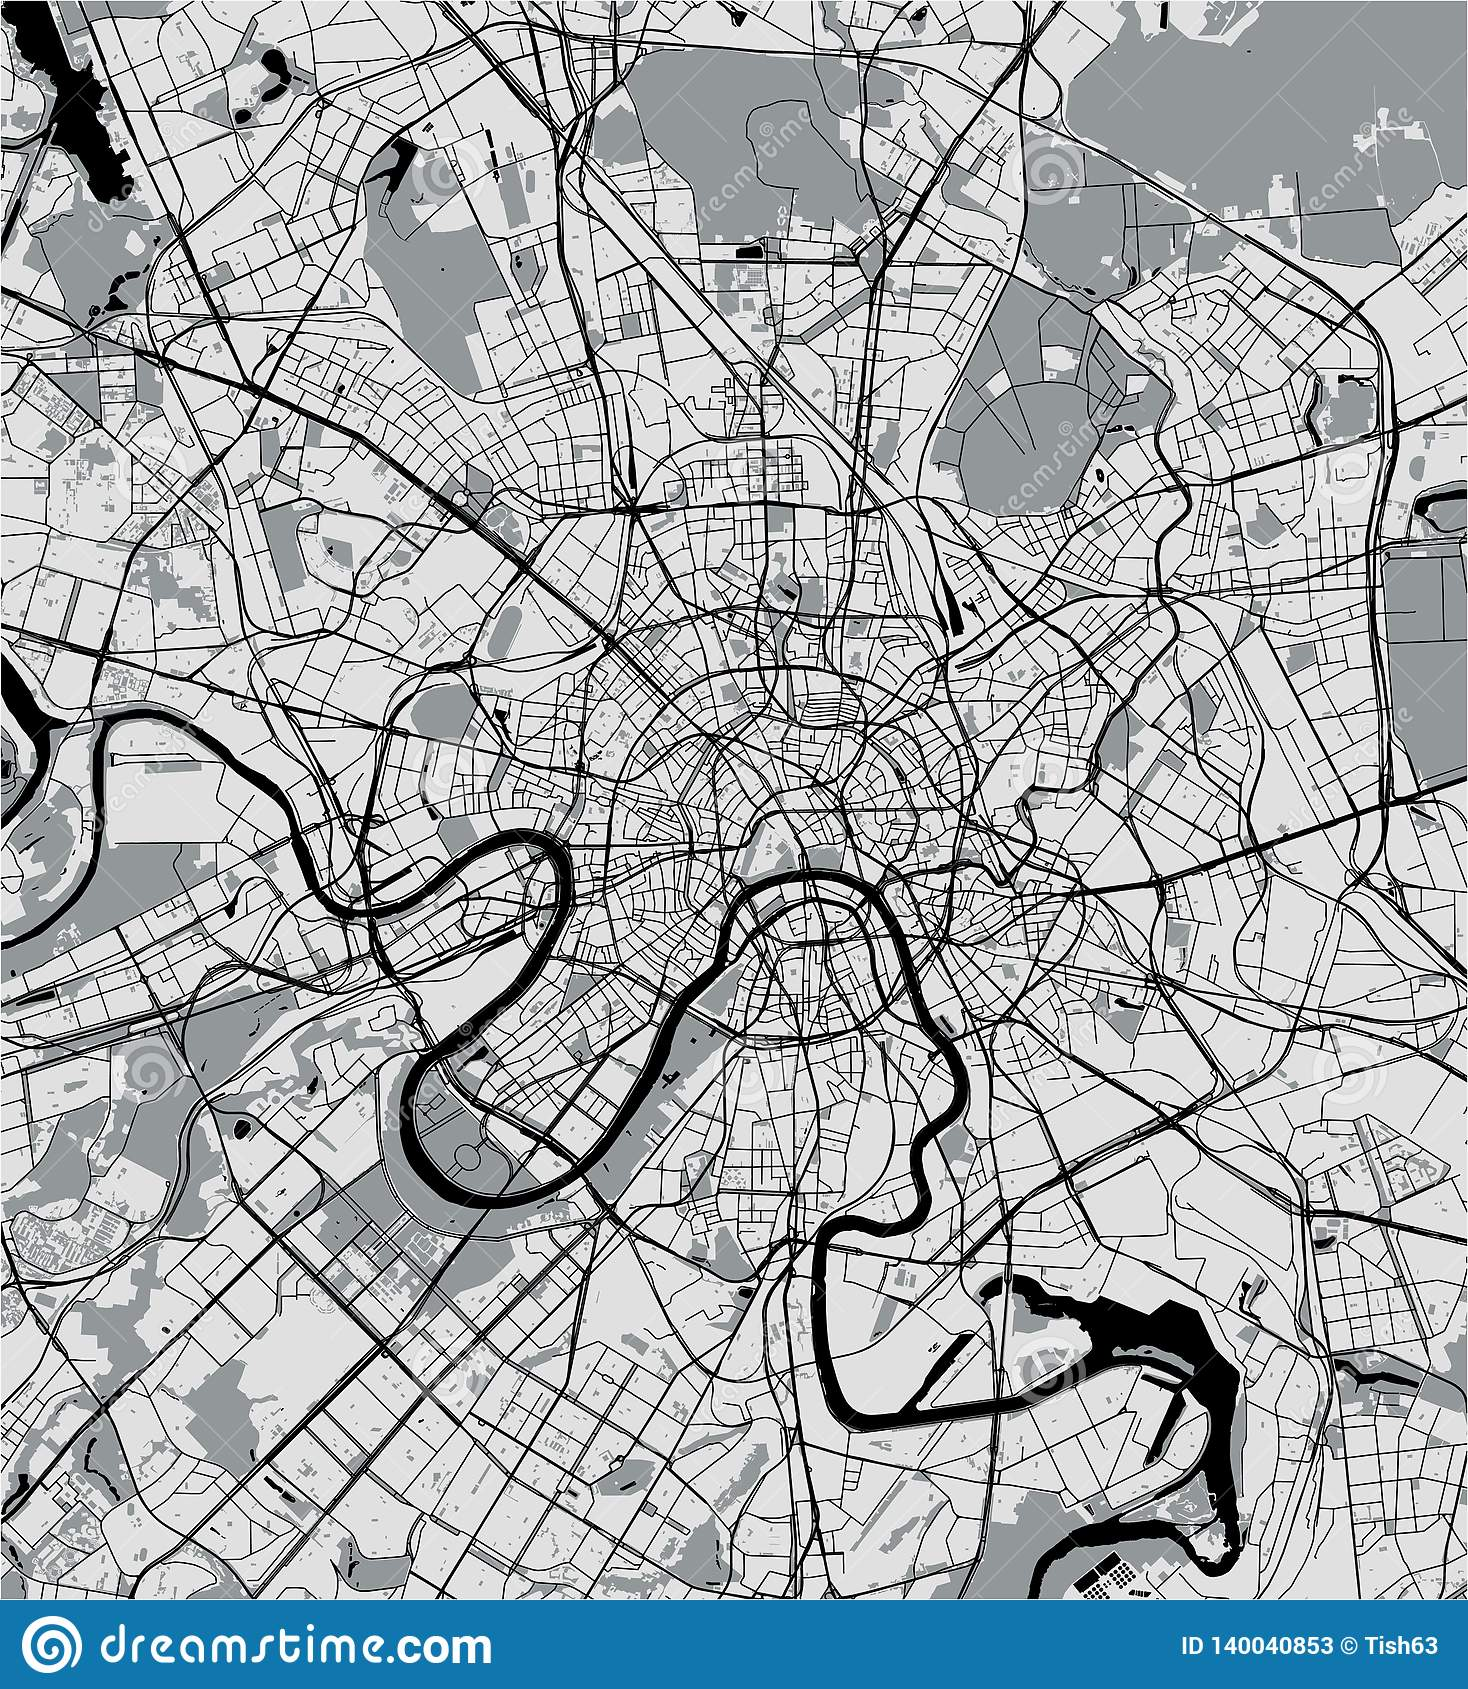 Map of the city of Moscow, Russia